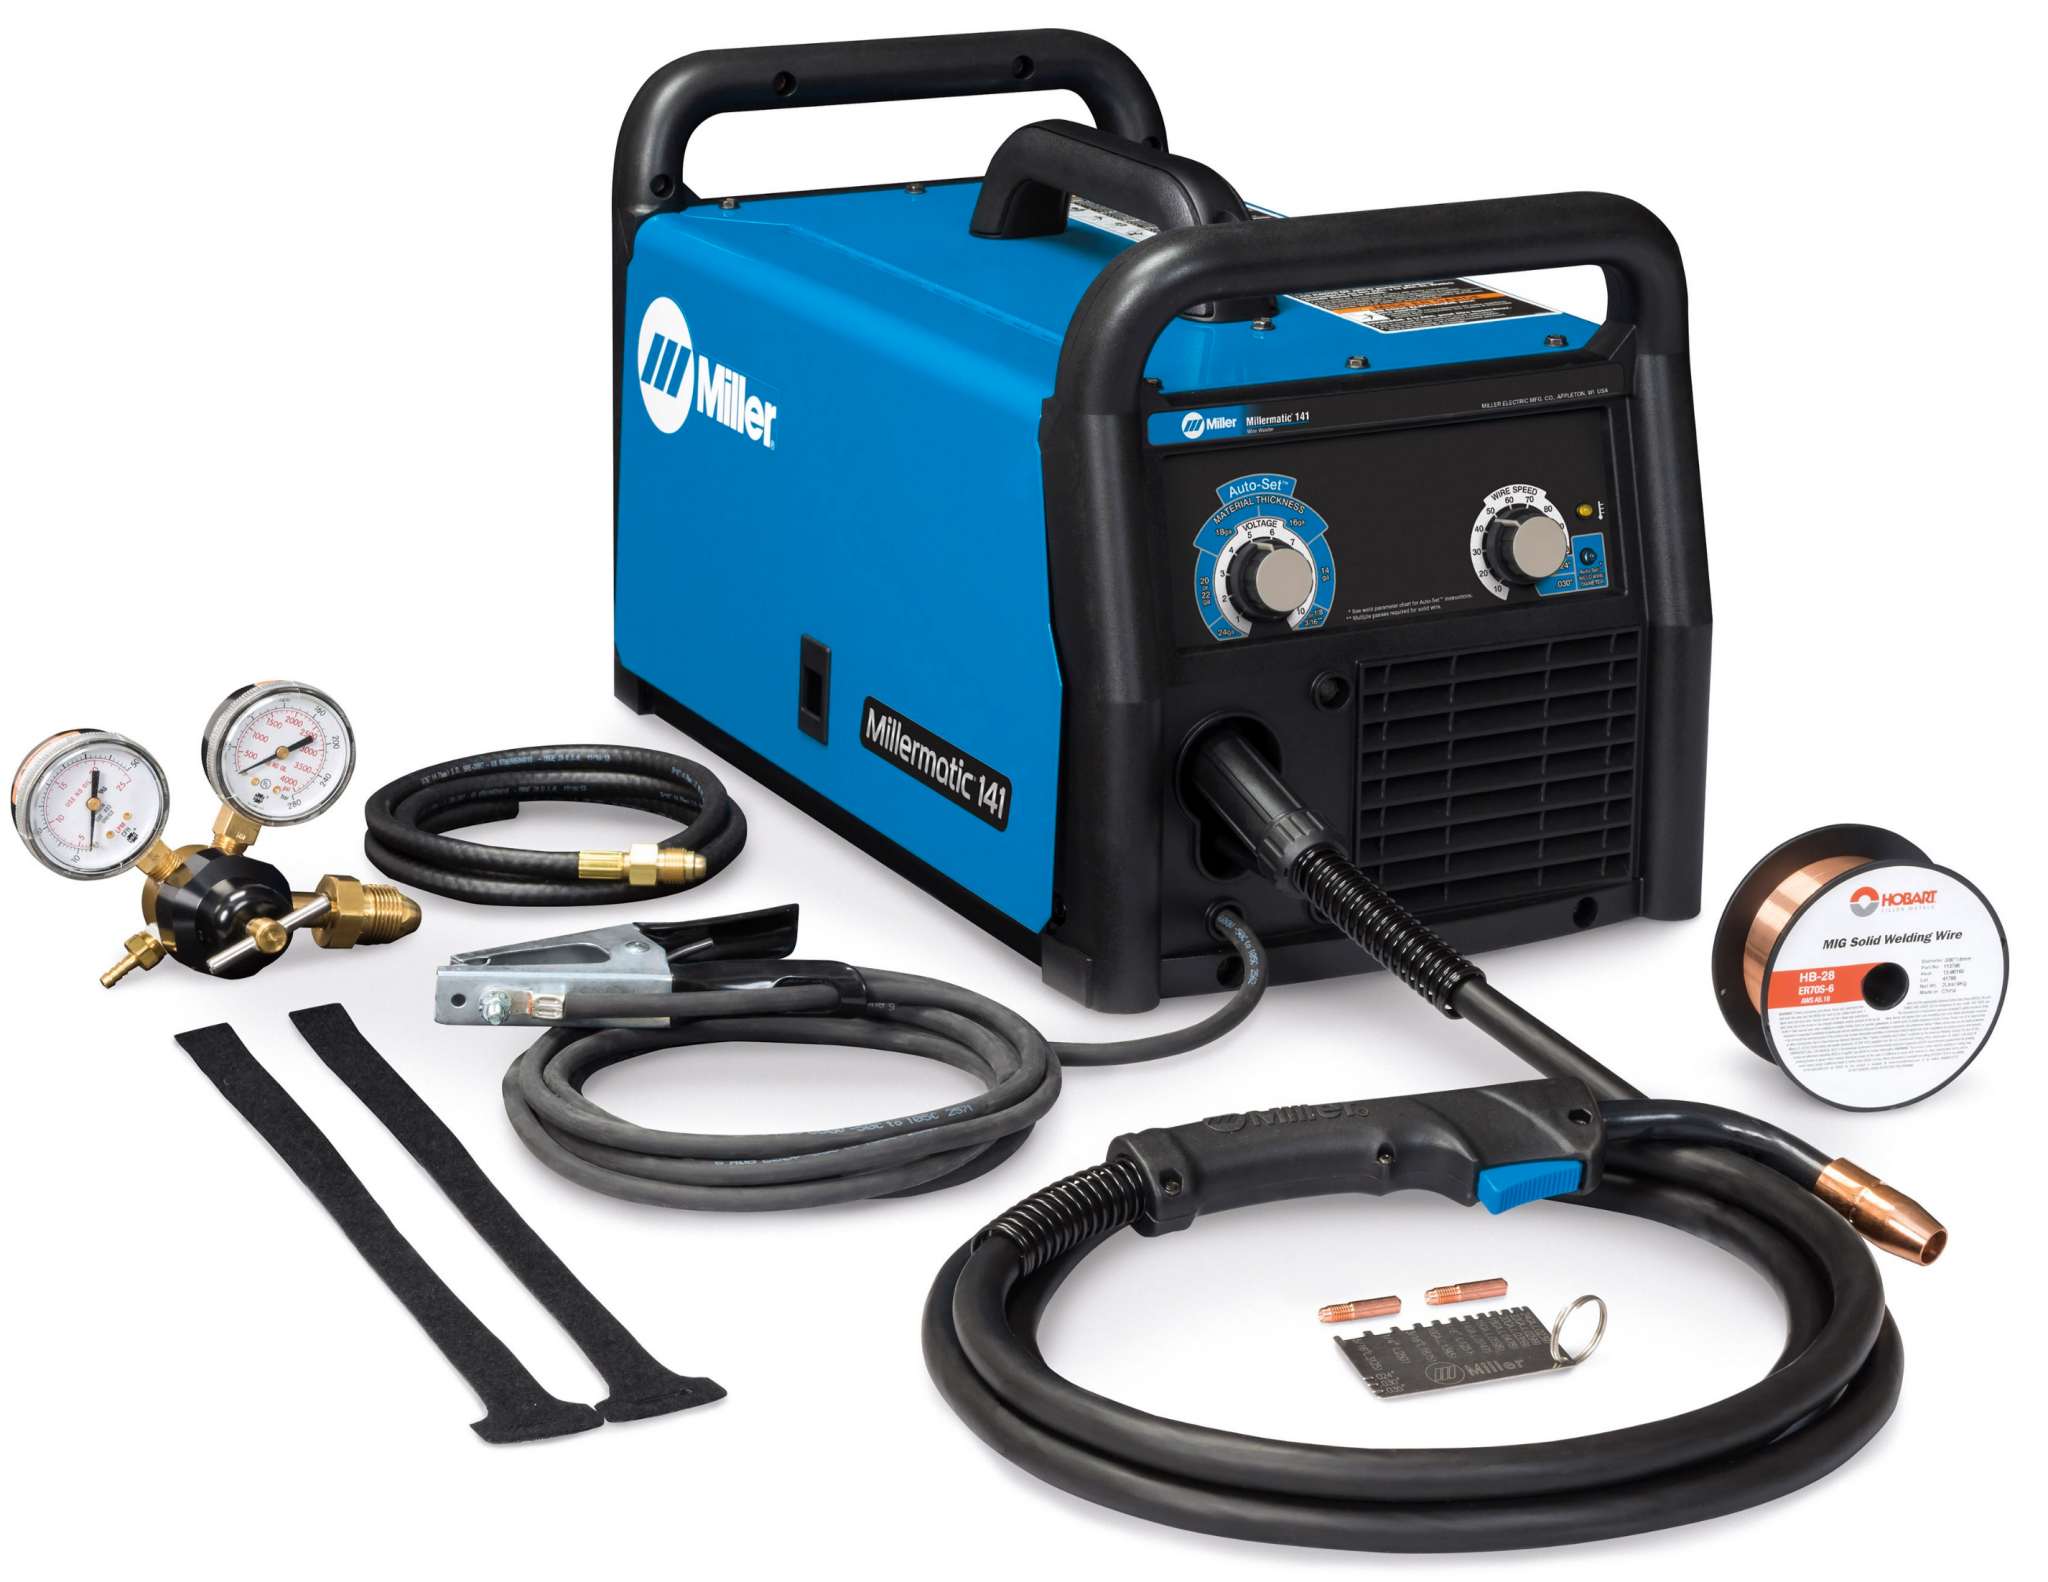 Mig Welder For Sale >> 6 Best Mig Welder For The Money 2019 Reviews Buying Guide